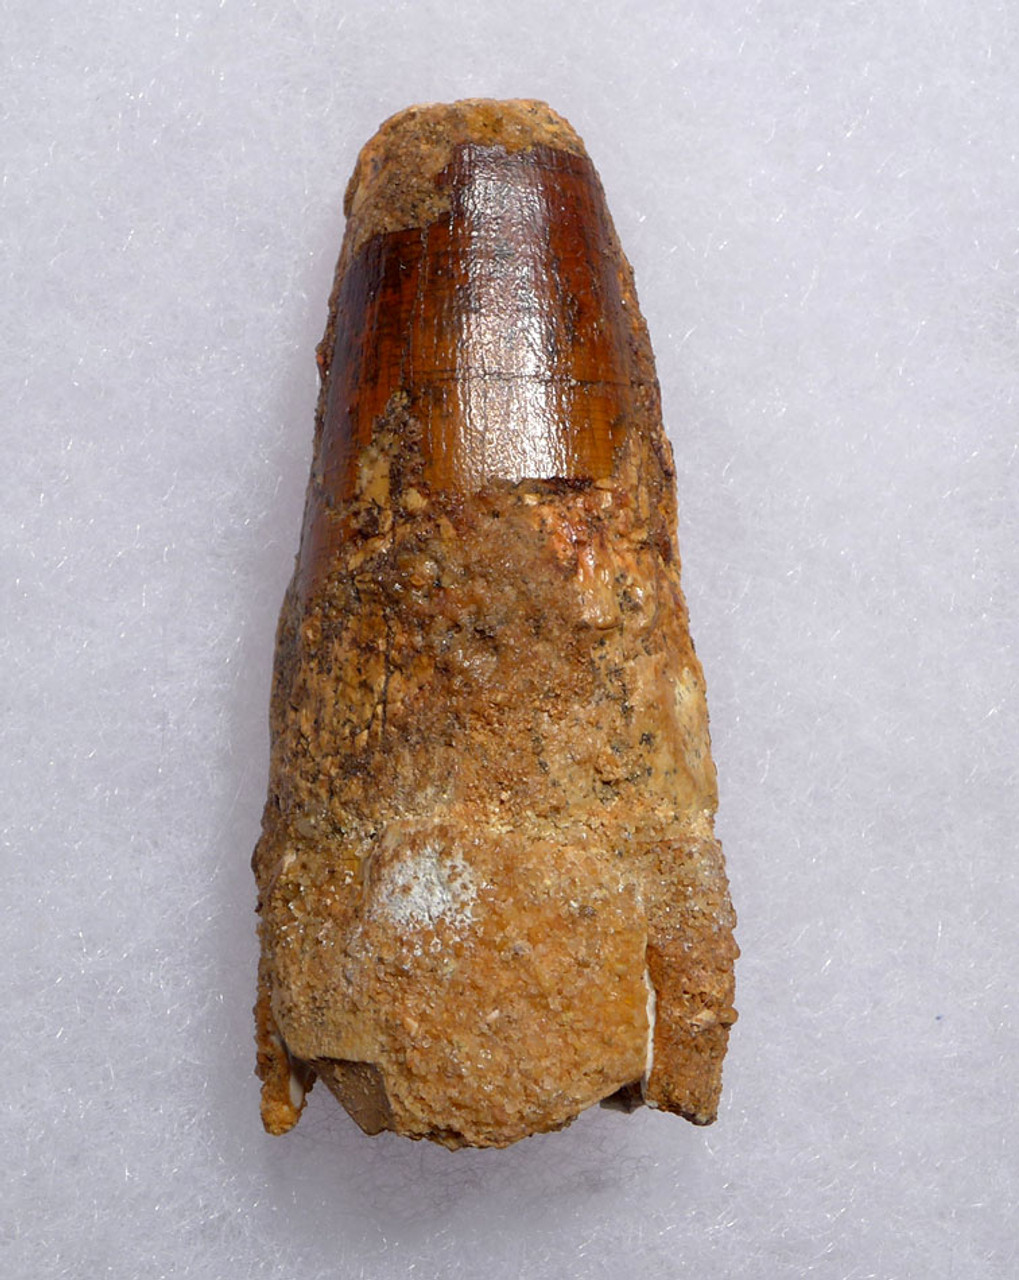 INEXPENSIVE ROBUST 2.25 INCH SPINOSAURUS DINOSAUR FOSSIL TOOTH *DT5-483